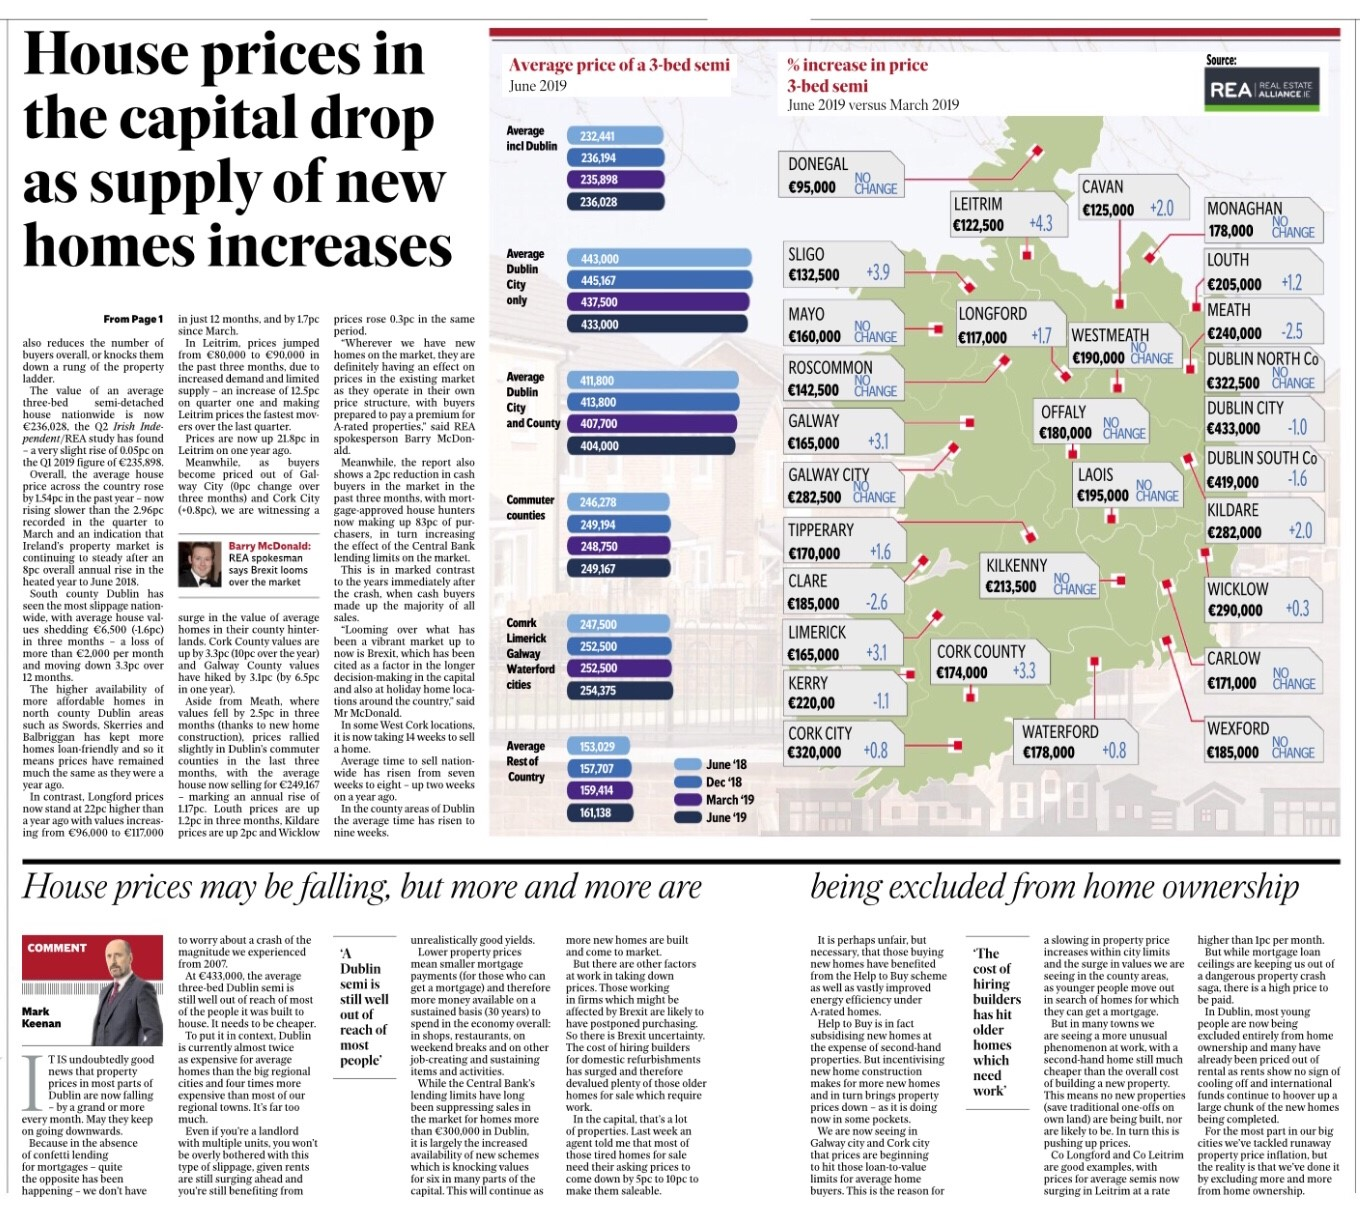 REA Average House Price Survey Q2 2019